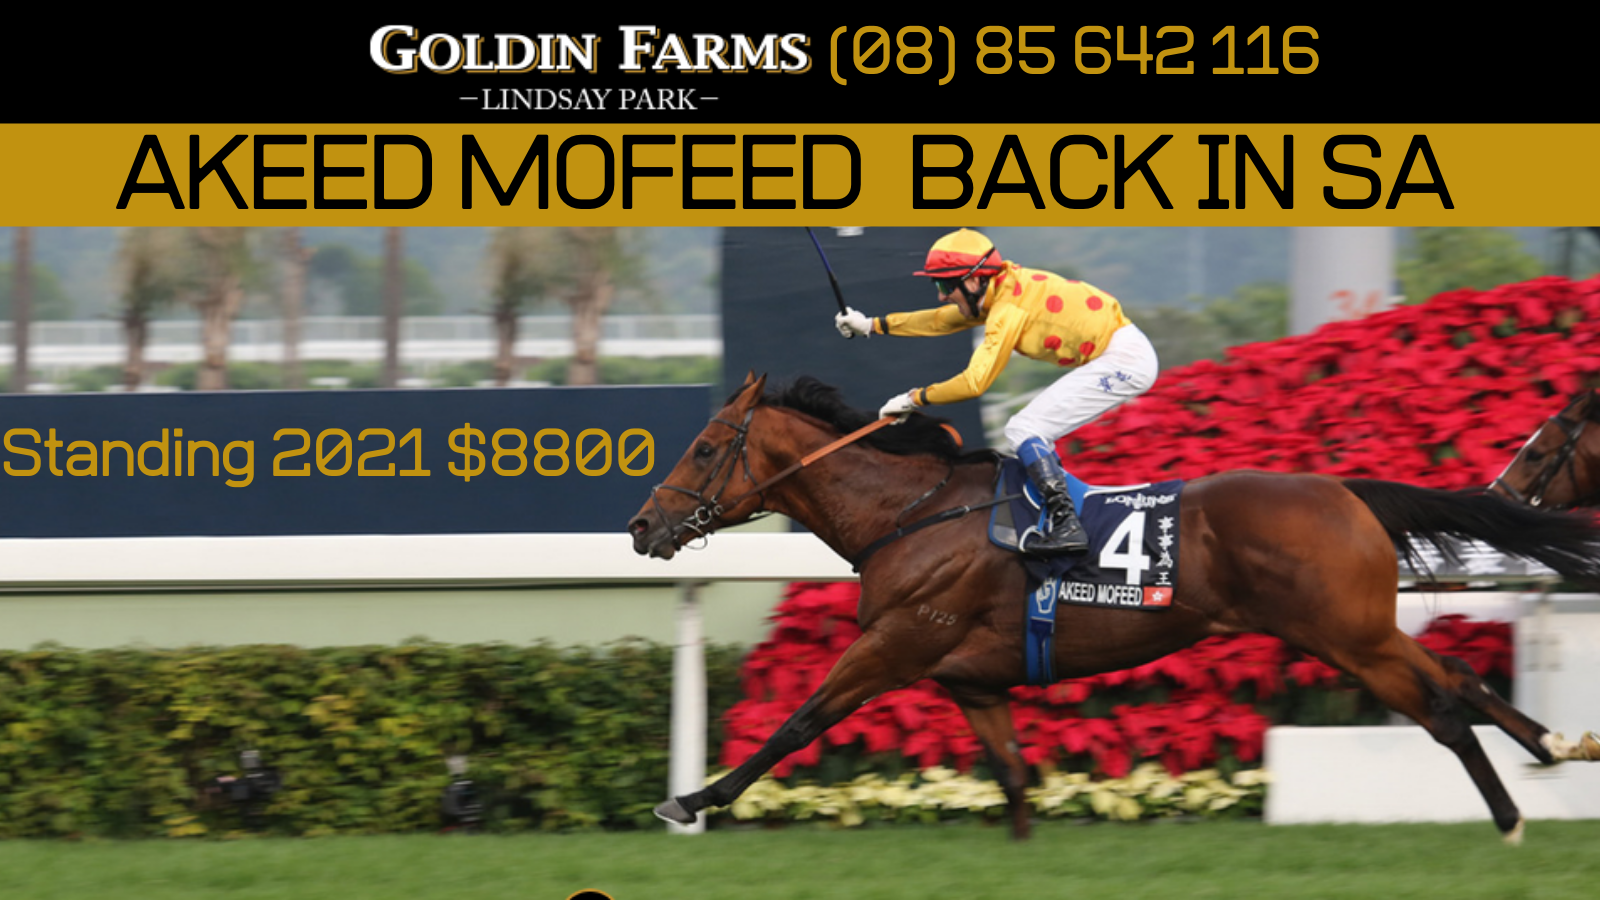 Akeed Mofeed returns to SA in 2021